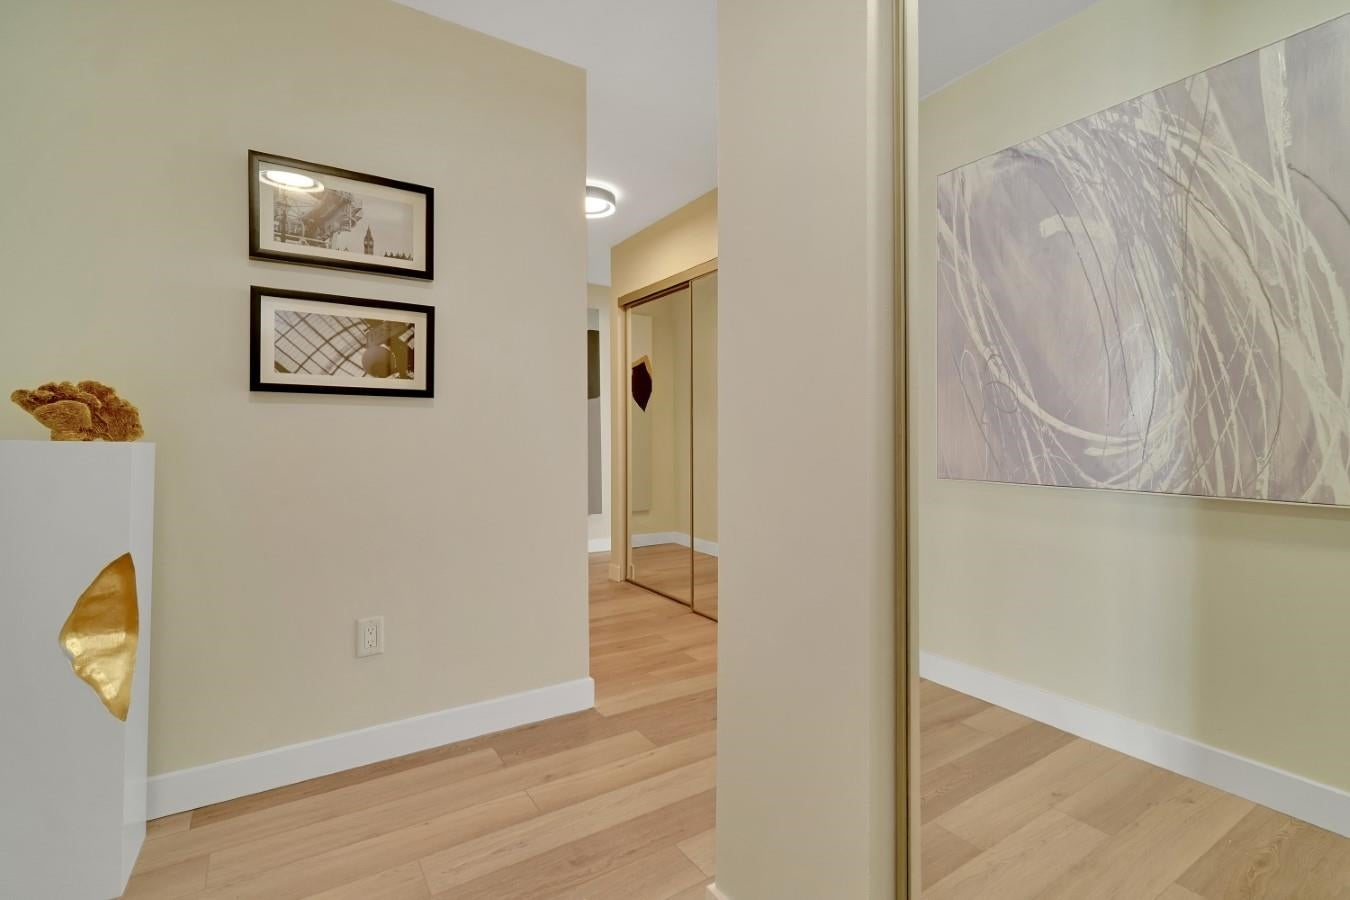 206 330 W 2ND STREET - Lower Lonsdale Apartment/Condo for sale, 2 Bedrooms (R2604160) - #25